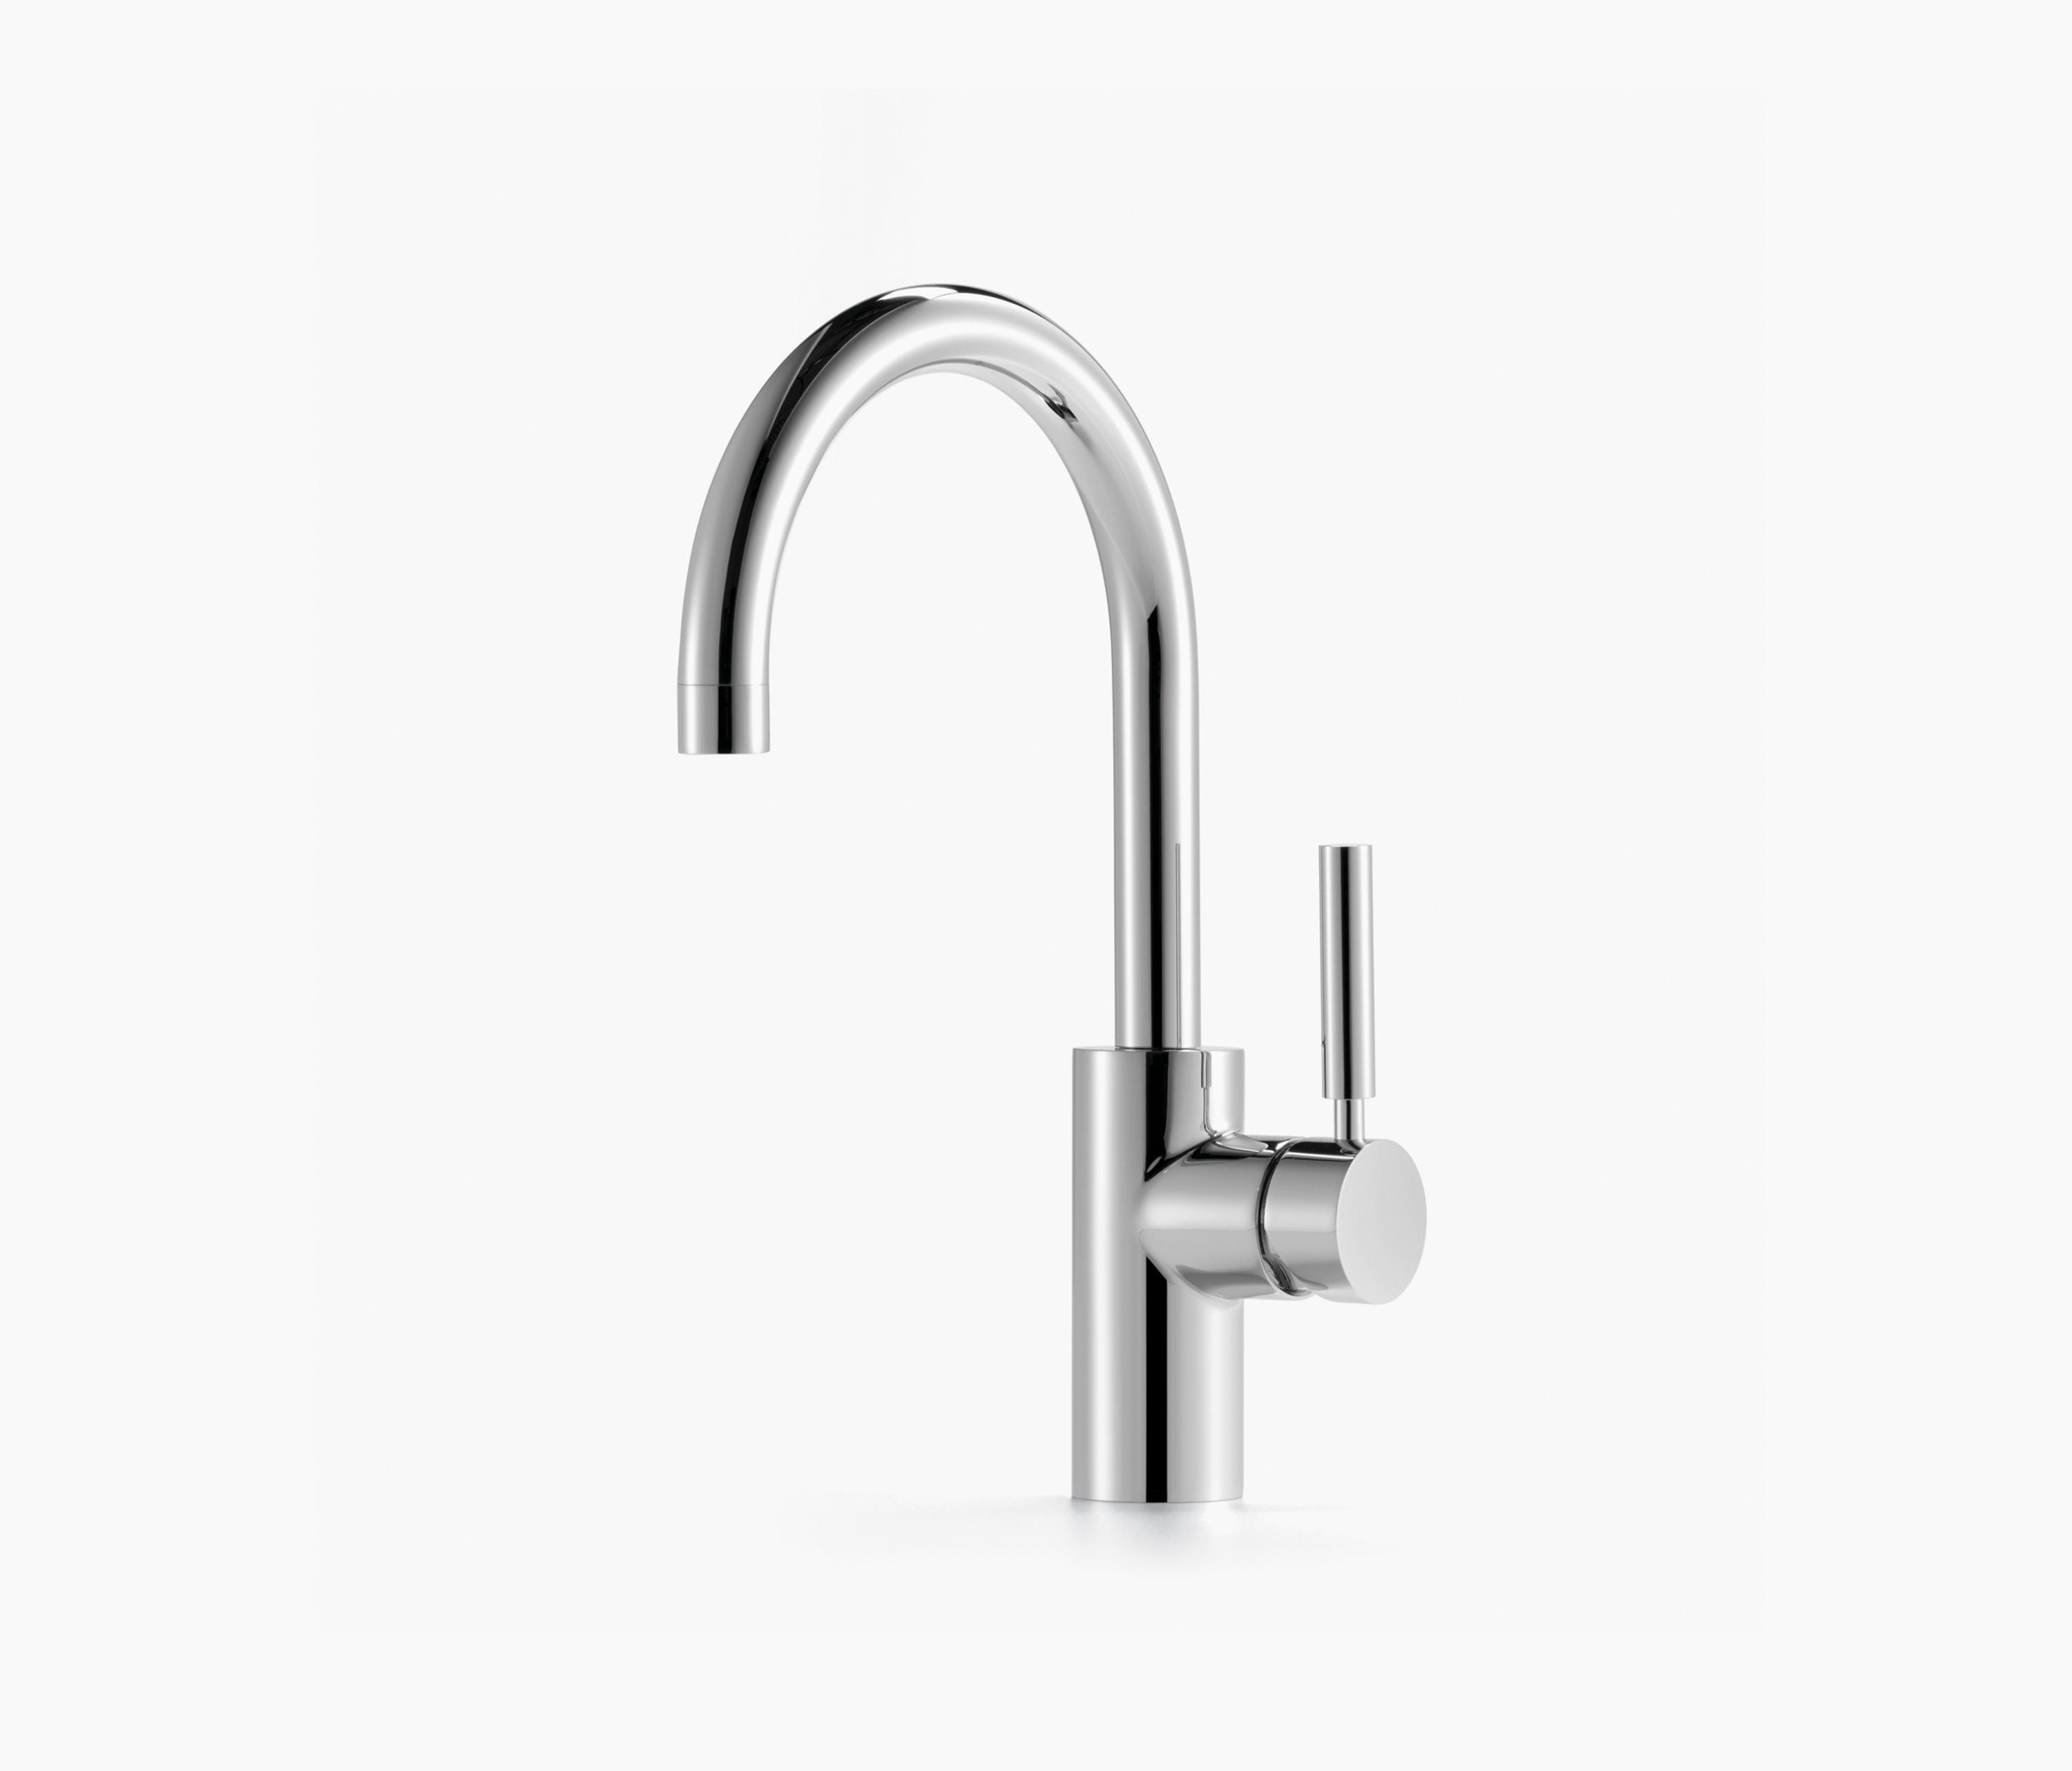 dornbracht fitting teaser faucet products sync kitchen us en